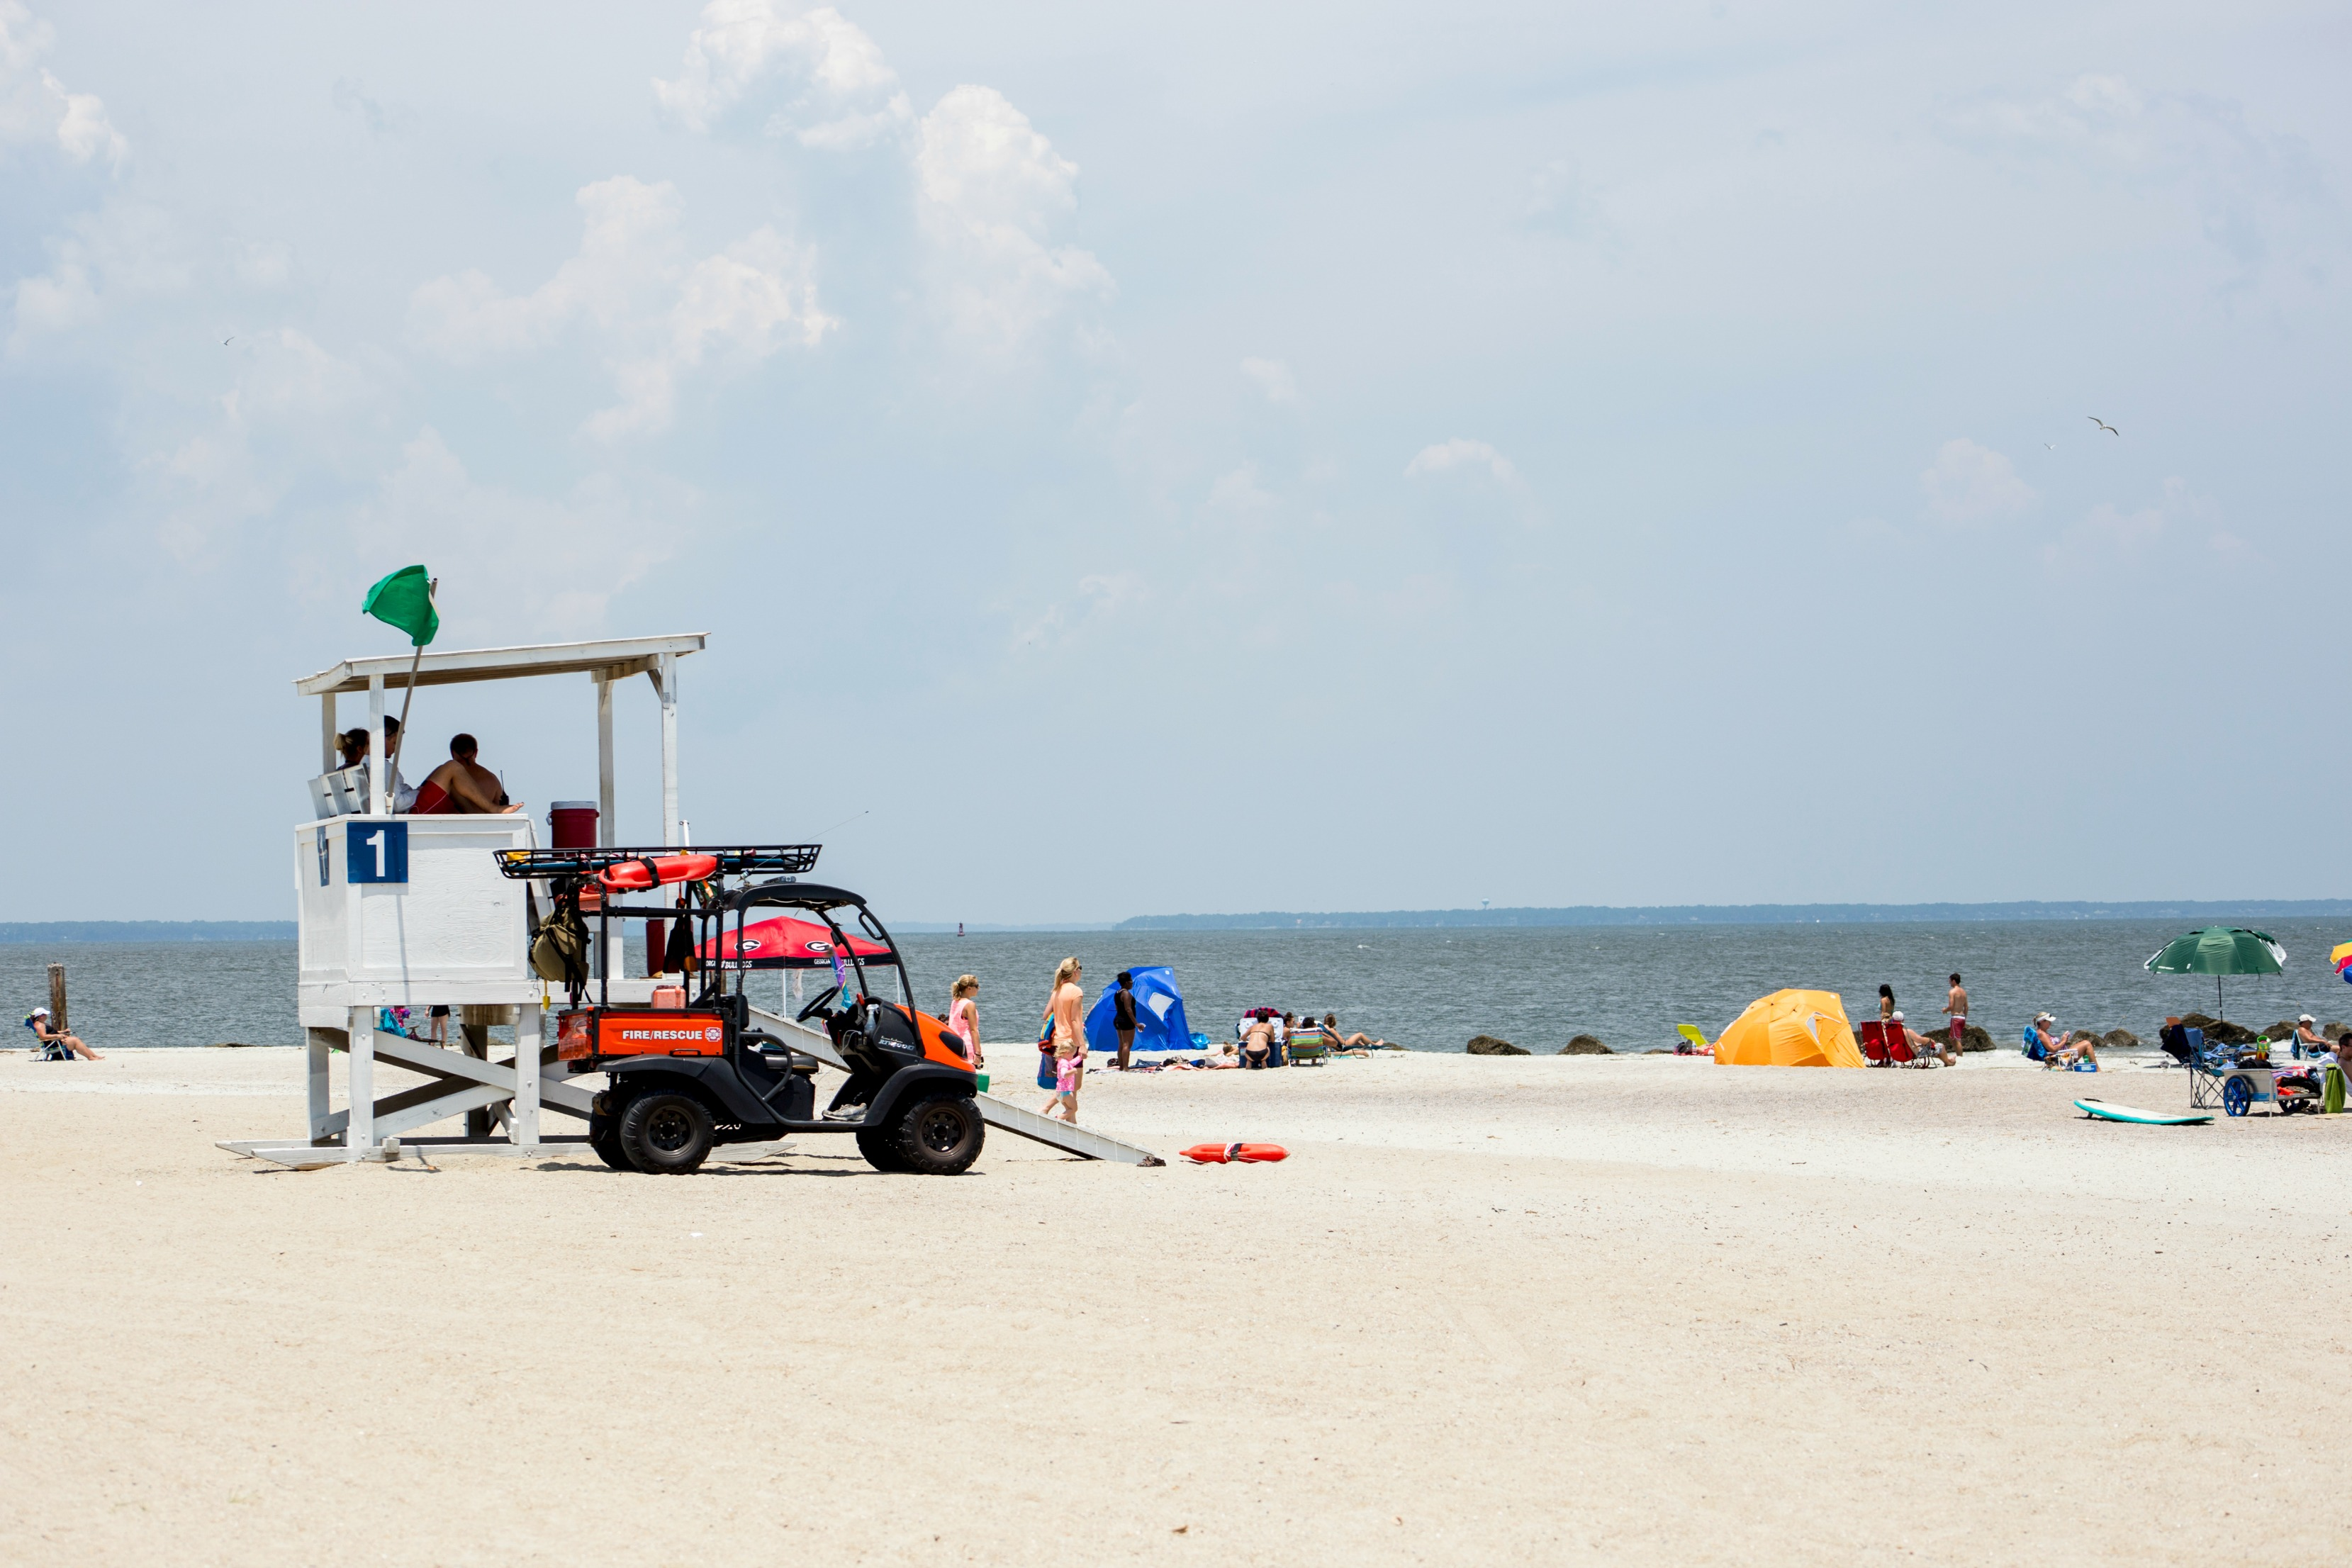 Tybee island beach information public beaches savannah ga search for nvjuhfo Image collections